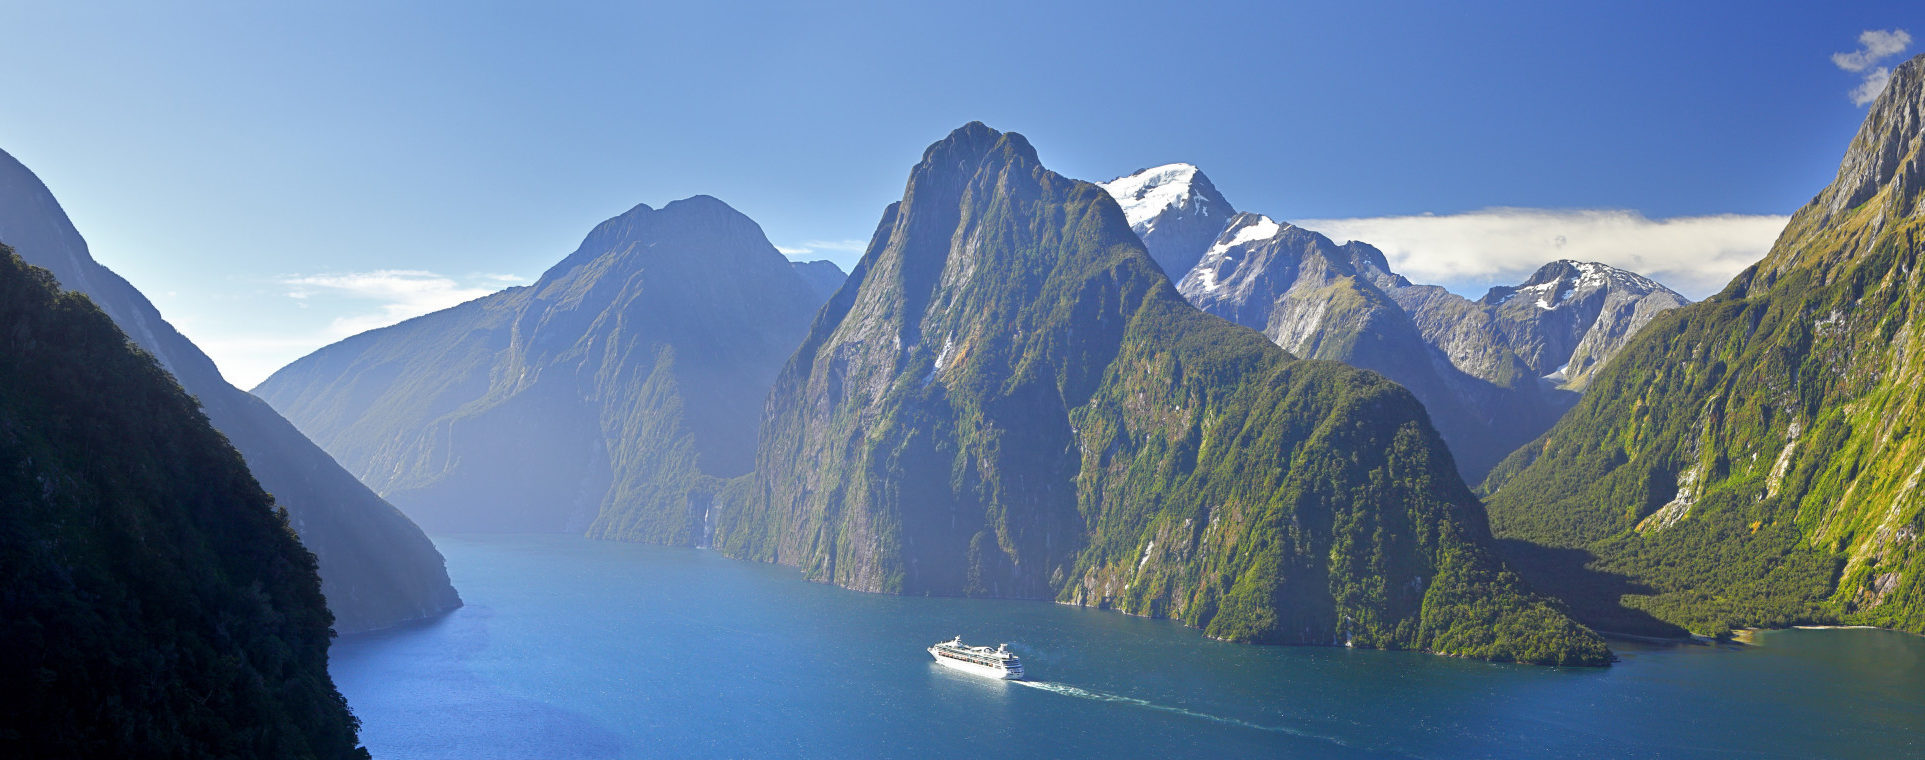 Horizons NZ Milford Sound, Fiordland National Park, New Zeala